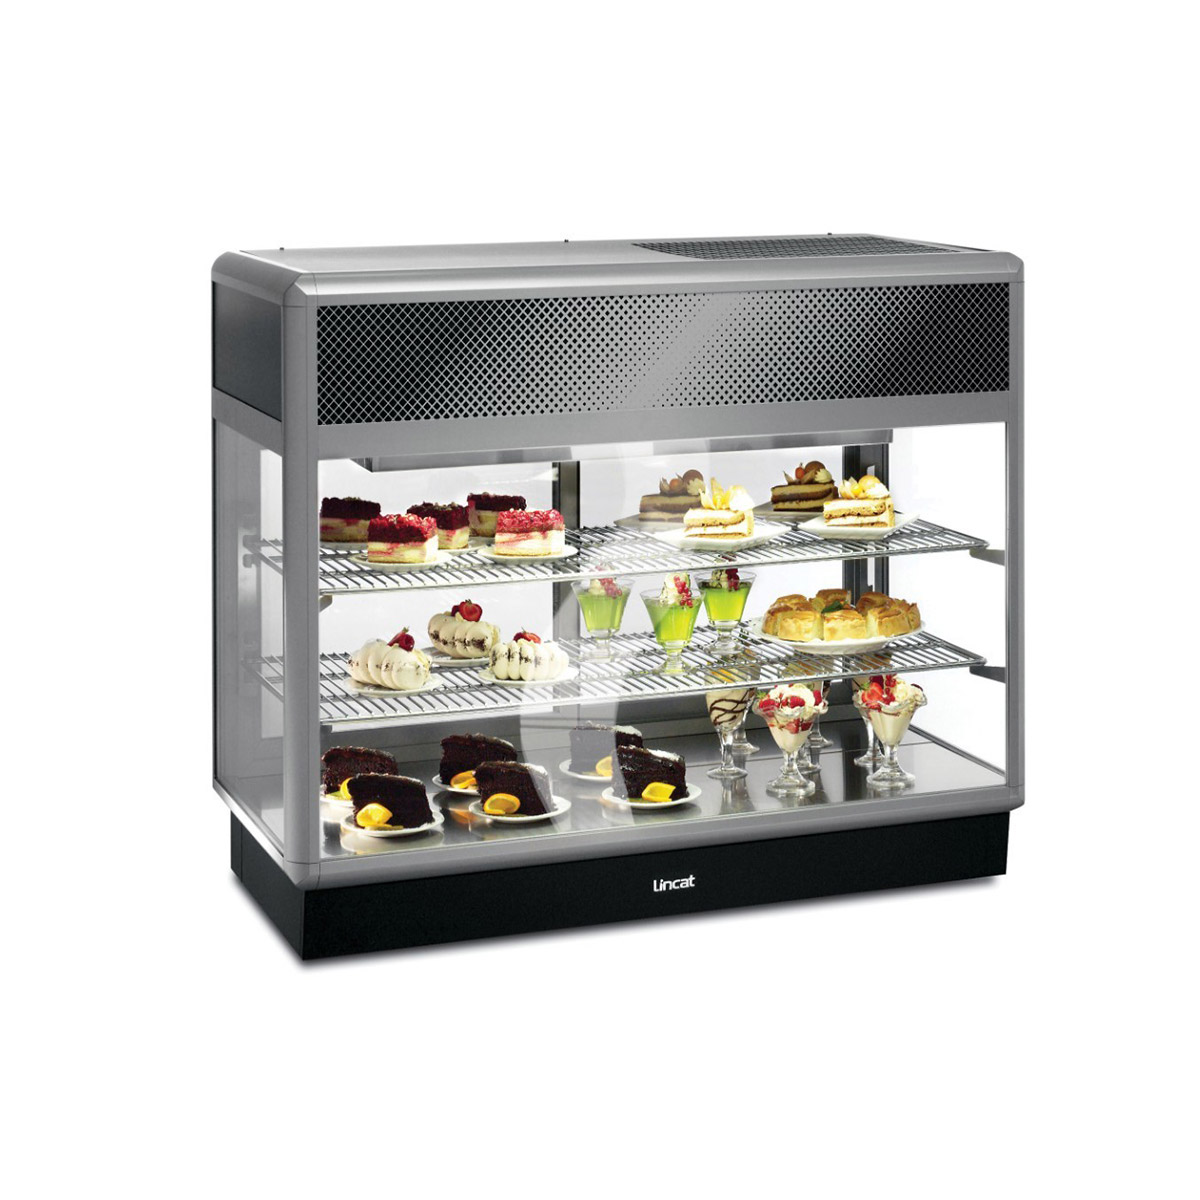 D6R/125B - Lincat Seal 650 Series Counter-top Rectangular Front Refrigerated Merchandiser - Back-Service - W 1250 mm - 0.7 kW